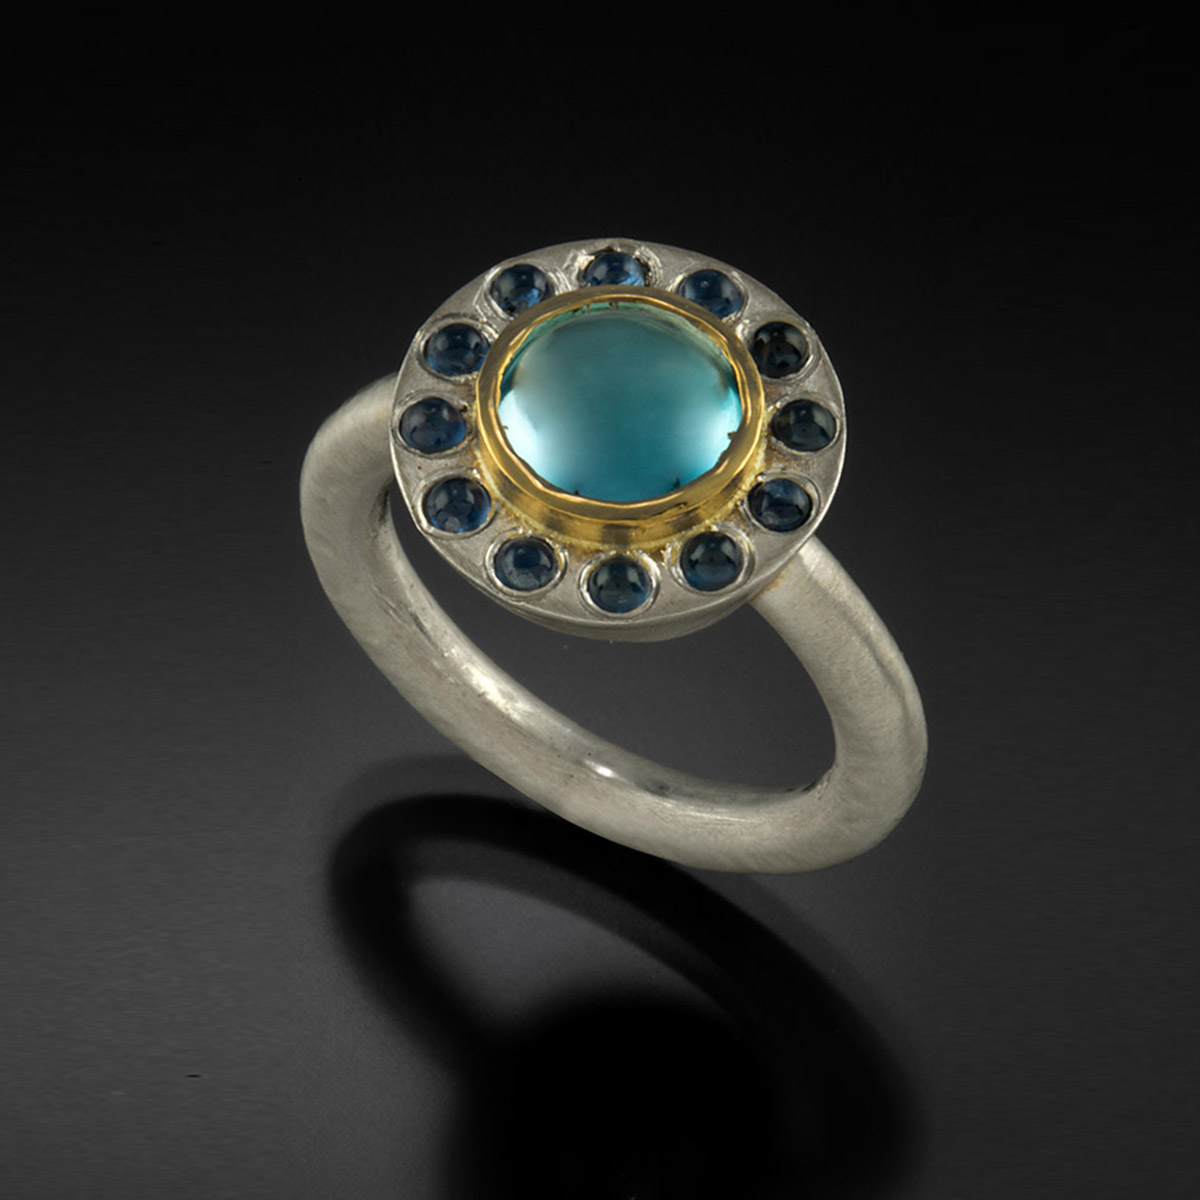 Brushed sterling silver and 18K yellow gold ring with blue Topaz